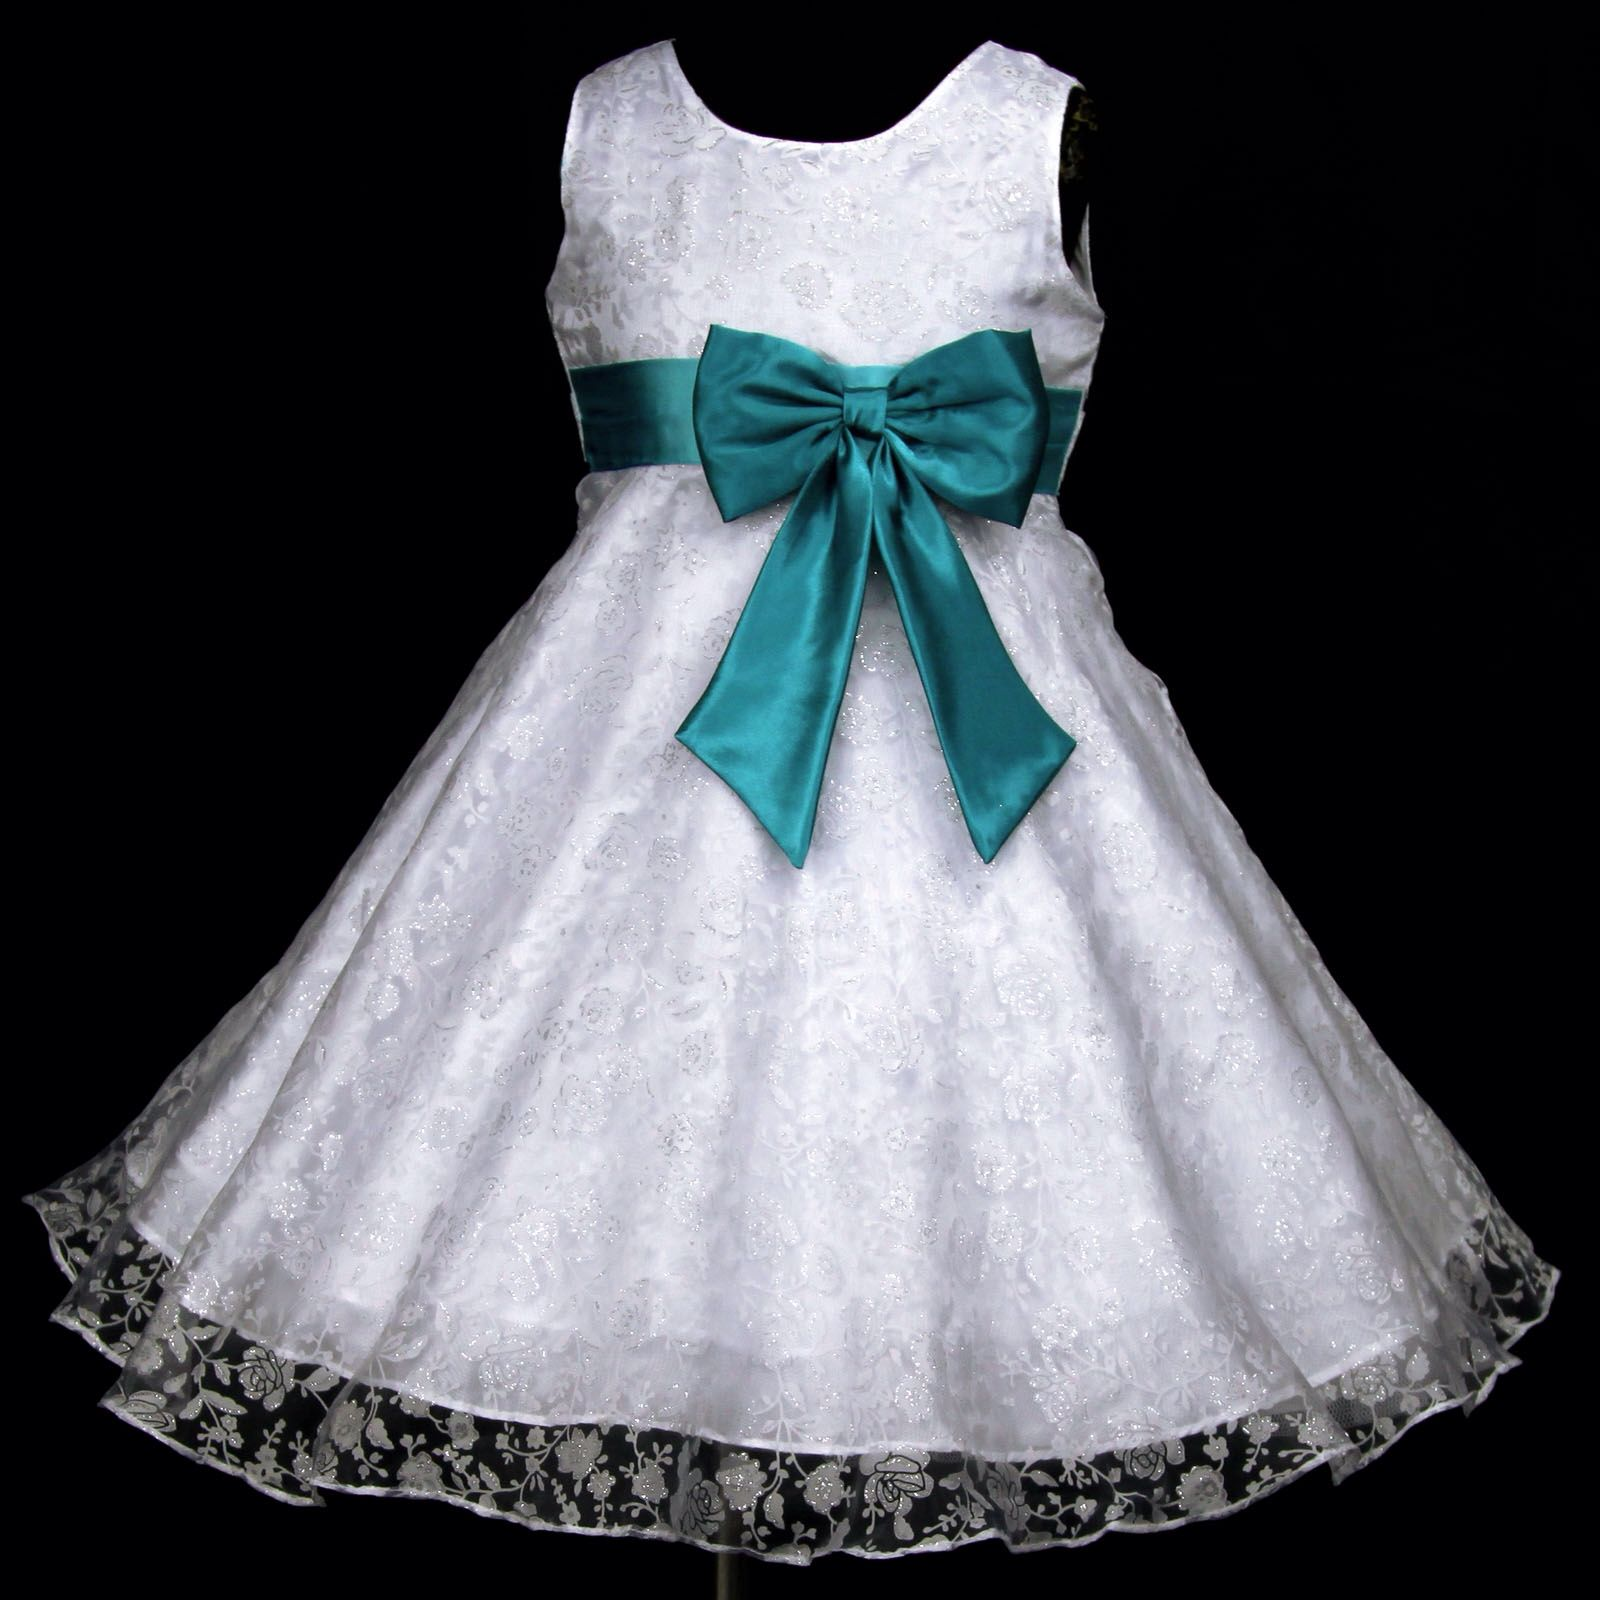 Teal flower girl dressis is adorable for makenna wedding teal flower girl dressis is adorable for makenna ombrellifo Choice Image